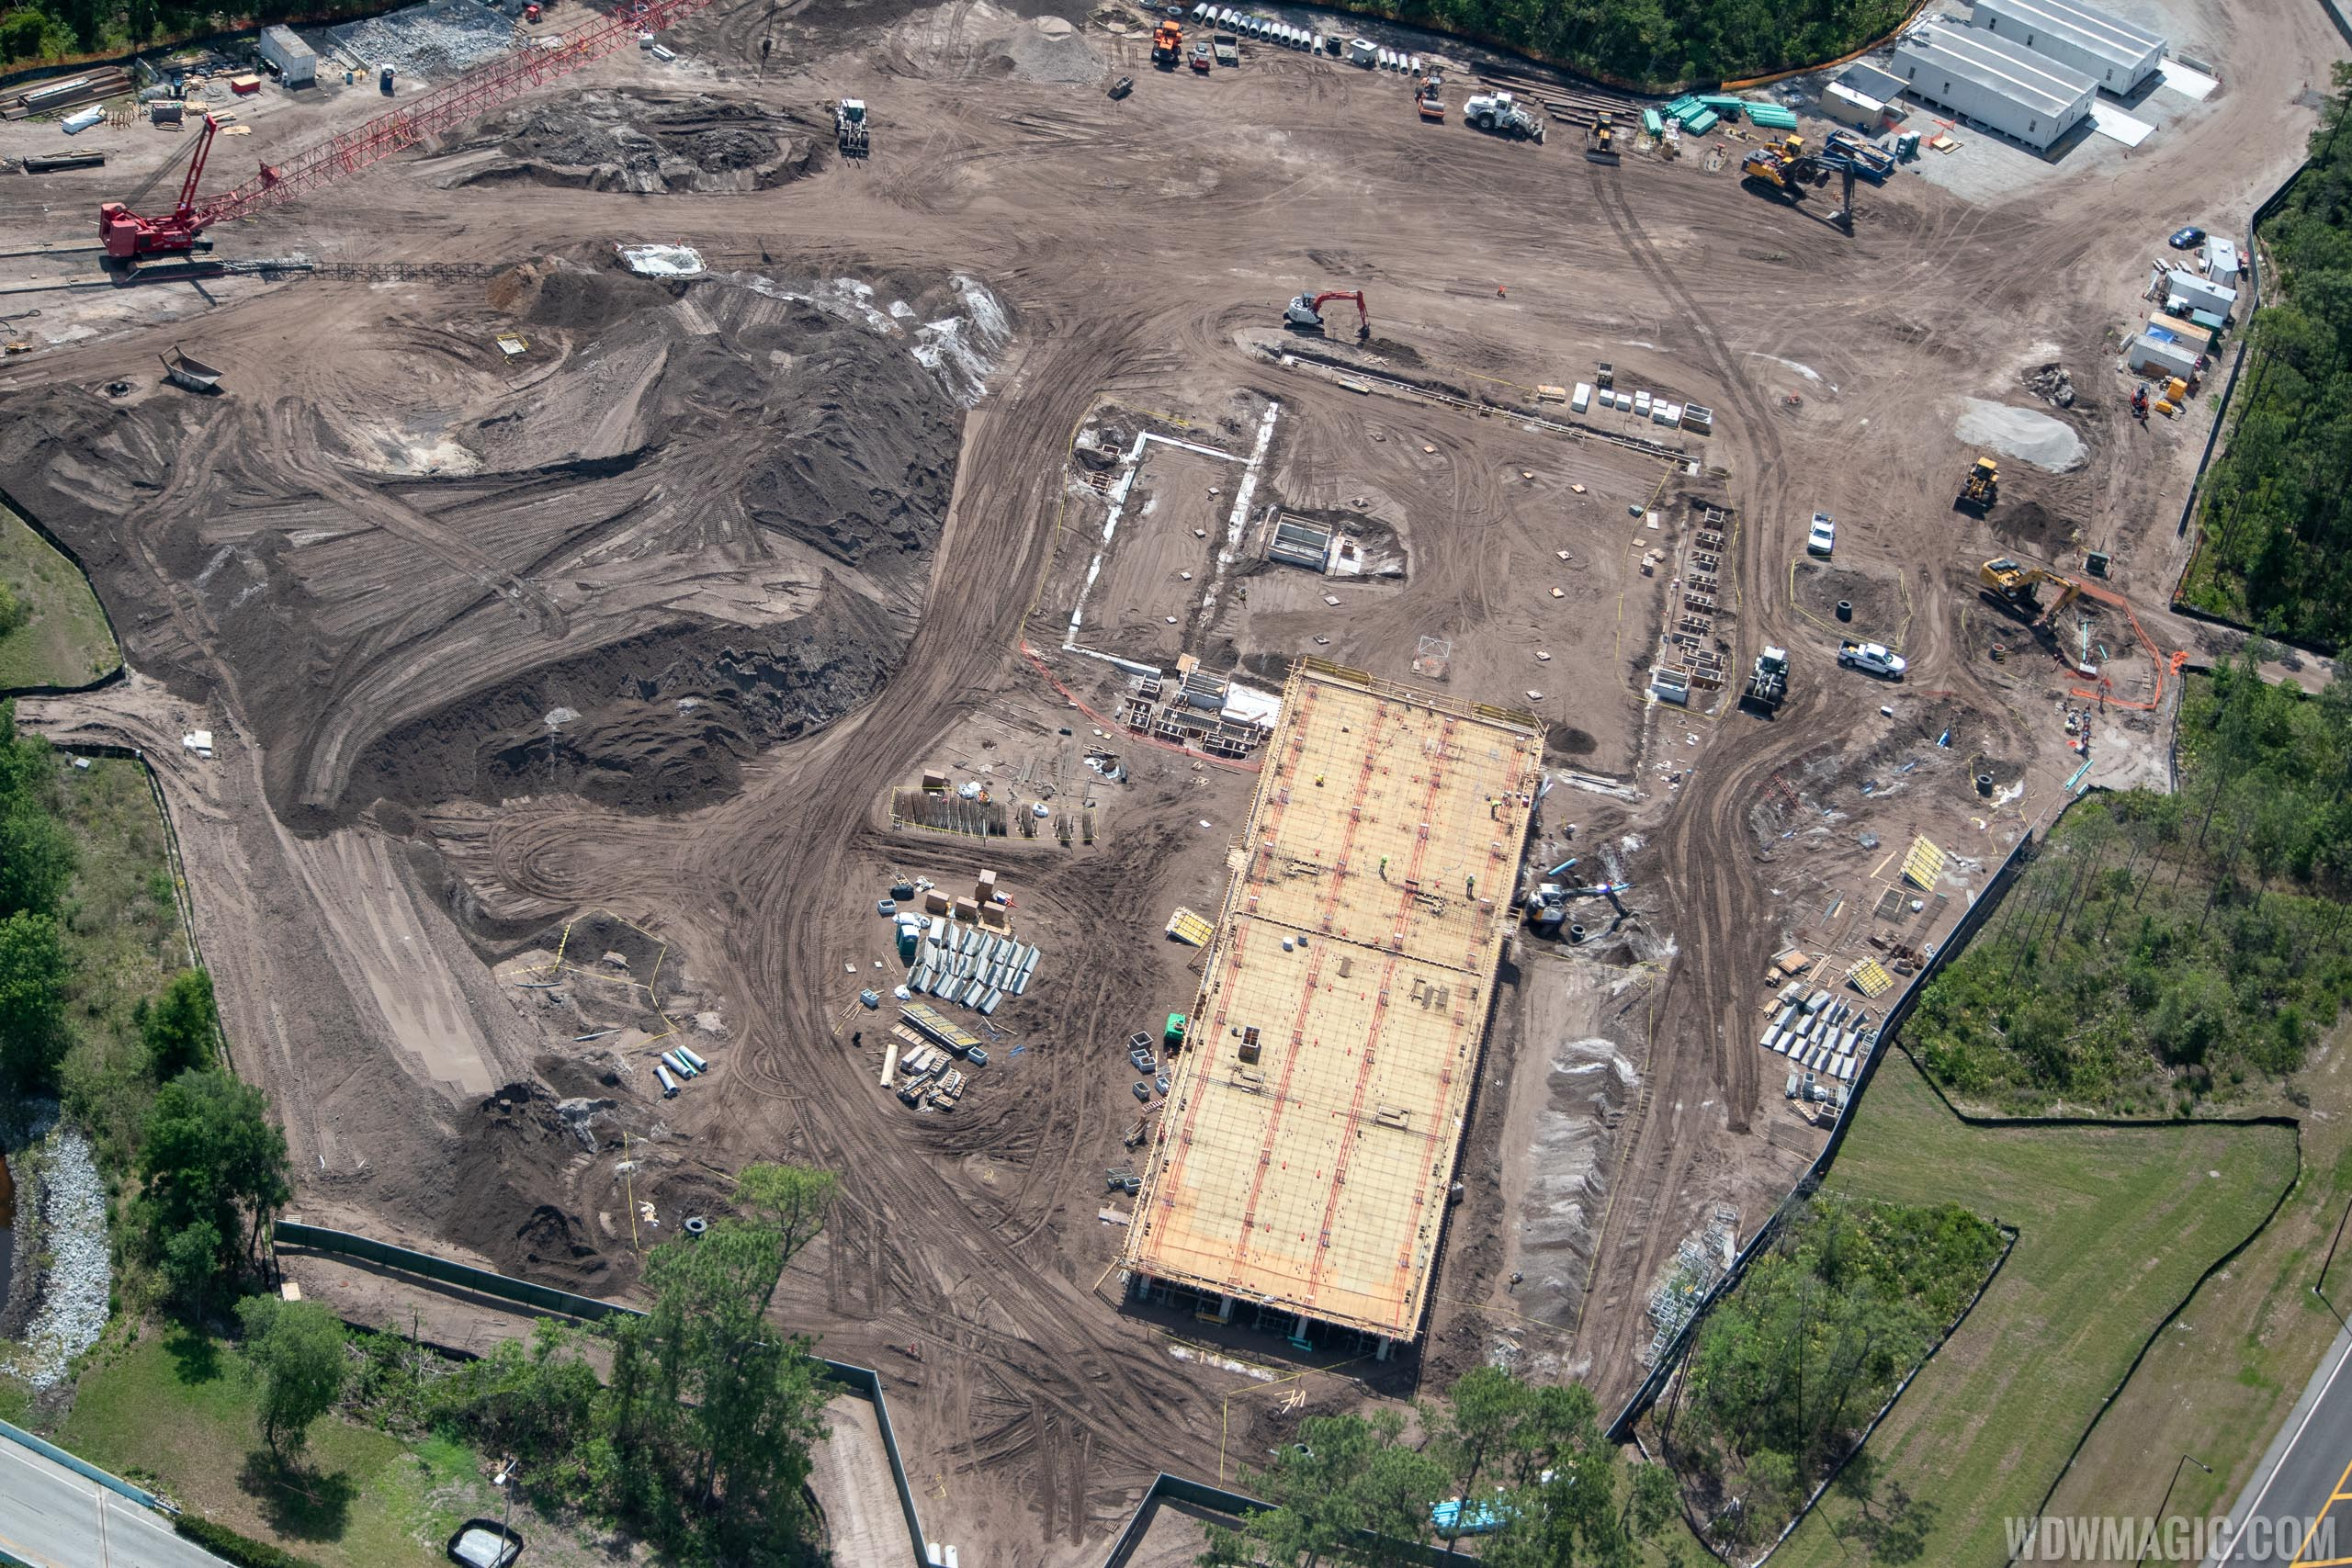 Star Wars hotel construction at Walt Disney World - May 2019